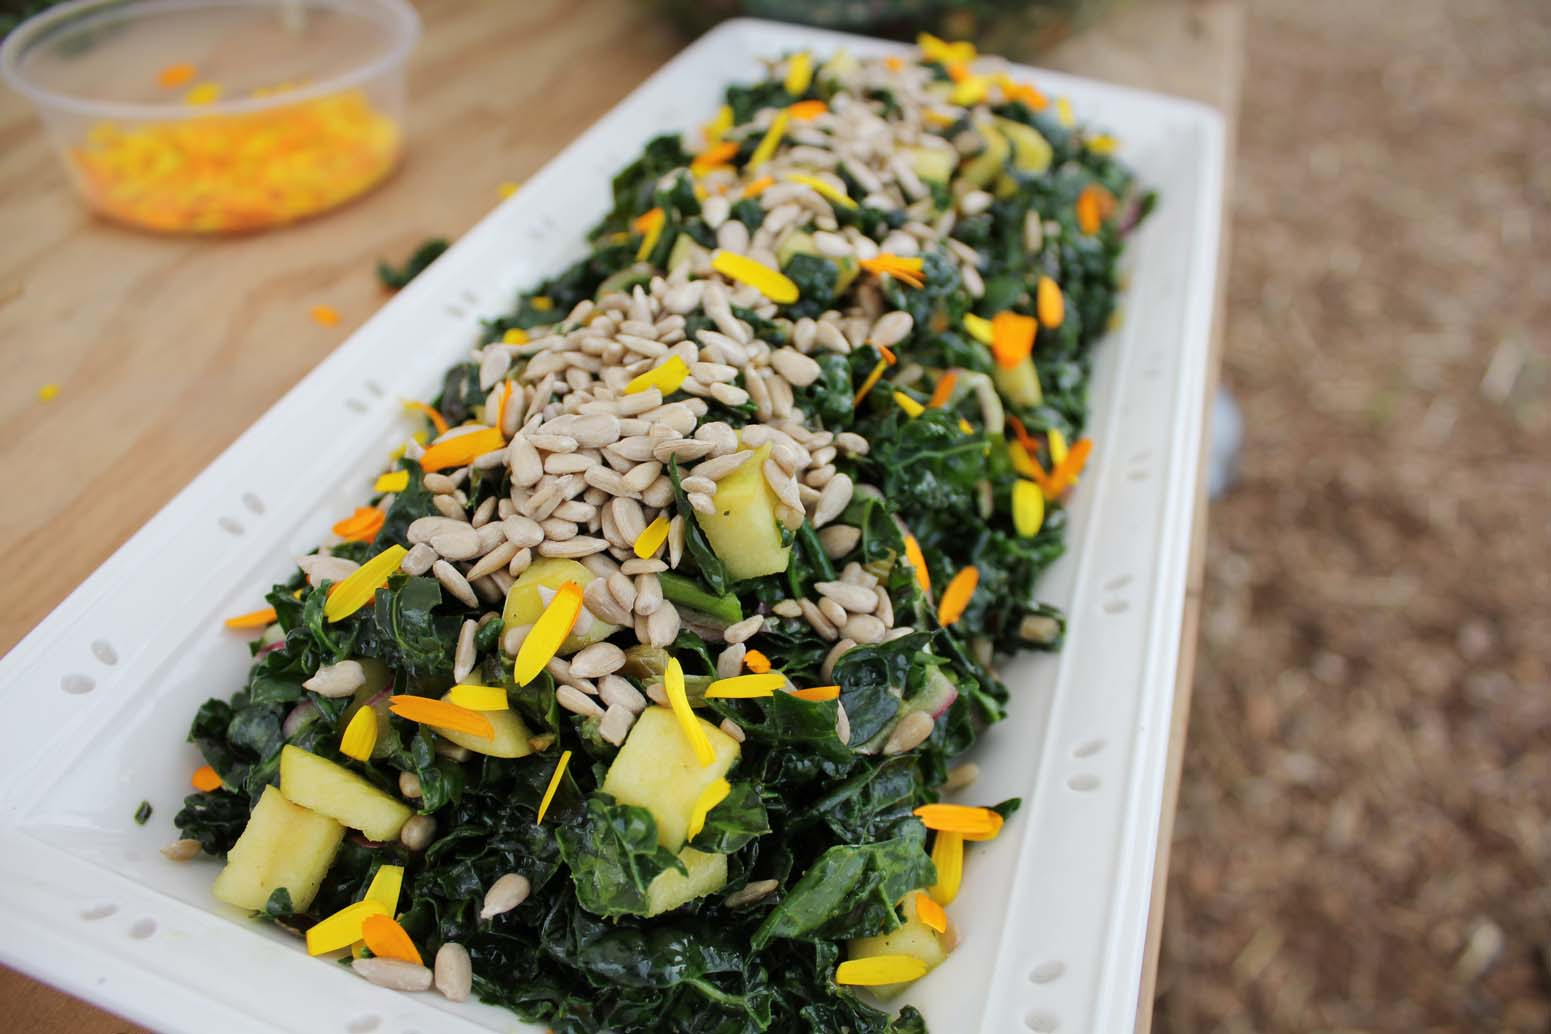 Kale Salad Recipe with Apple and Dried Sour Cherries